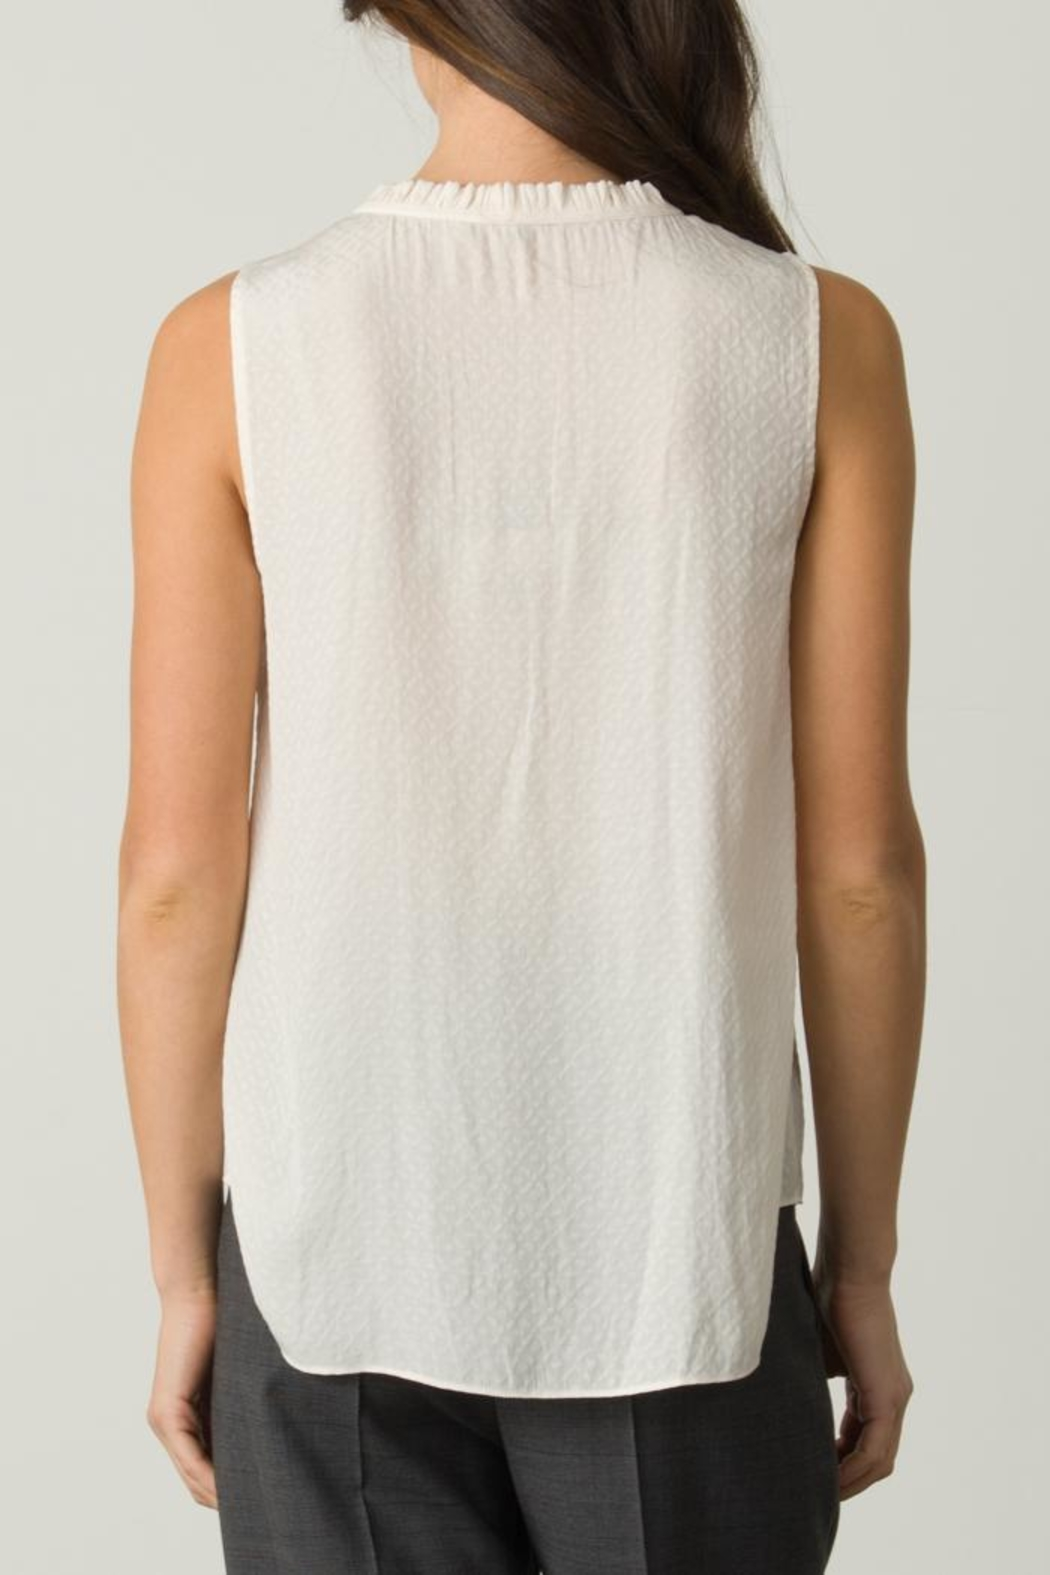 Margaret O'Leary Sleeveless Tie Top - Front Full Image